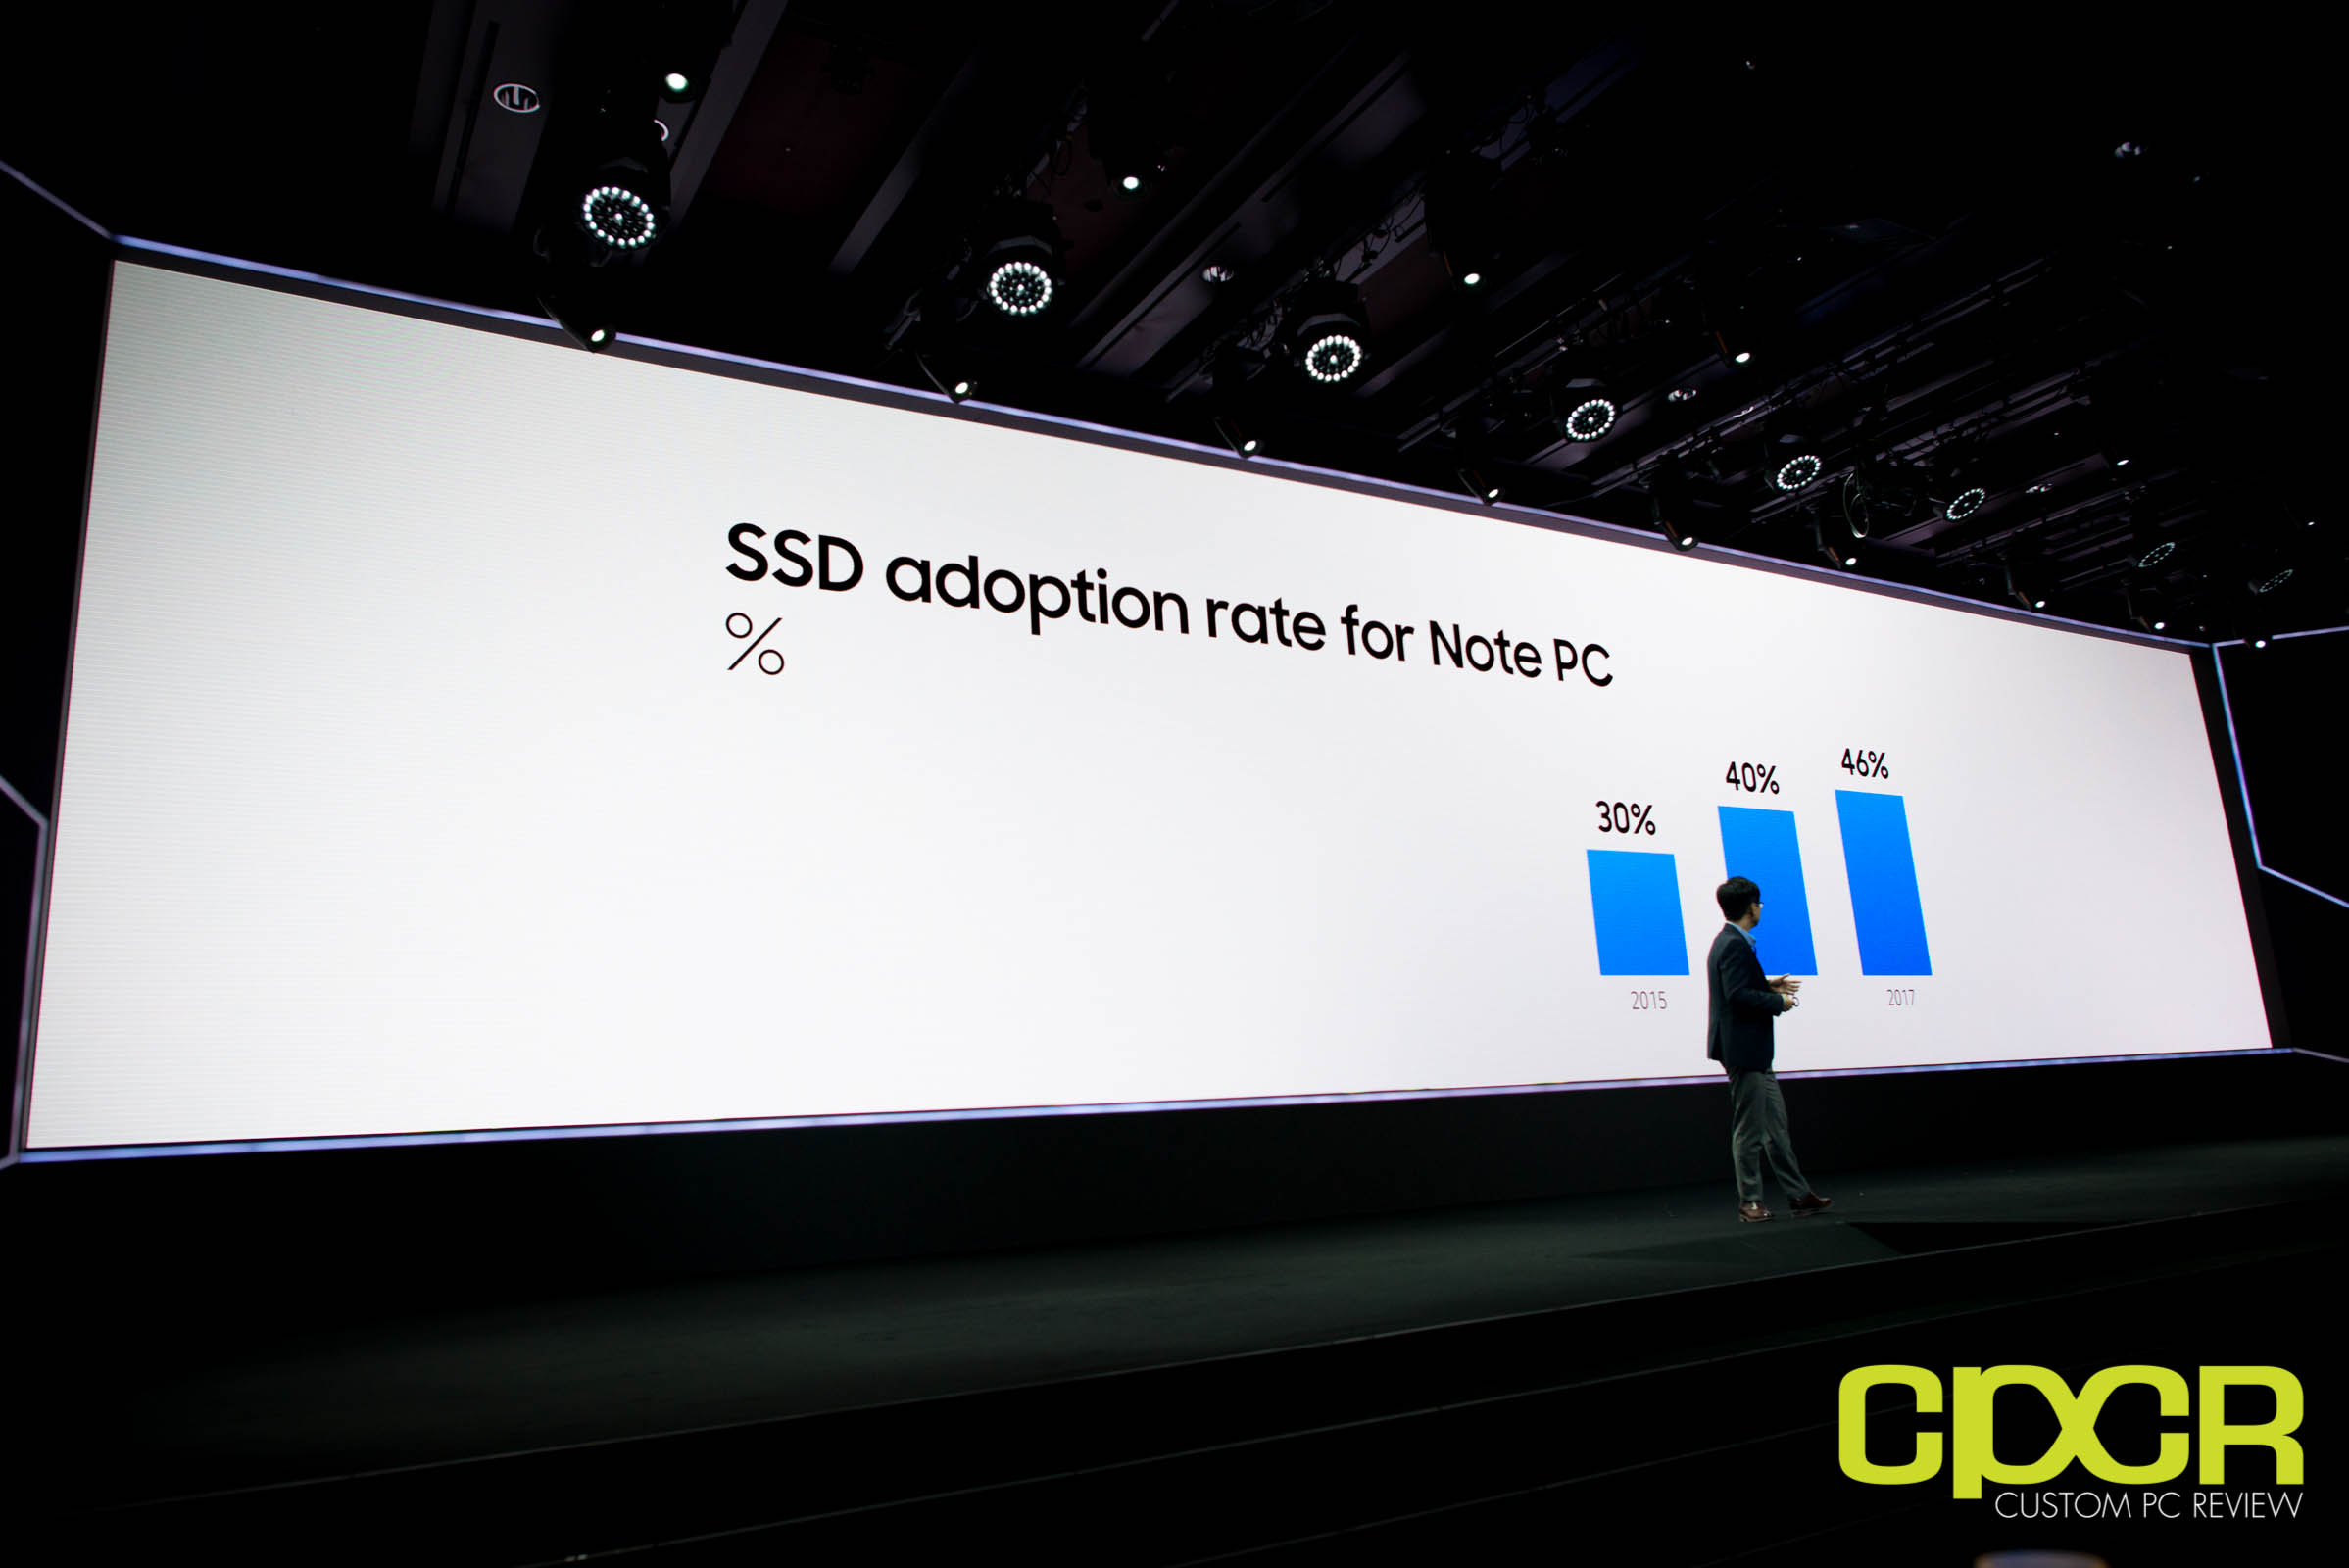 Samsung Expects 512GB SSD, 1TB HDD to Reach Price Parity in 2020, 236% ...